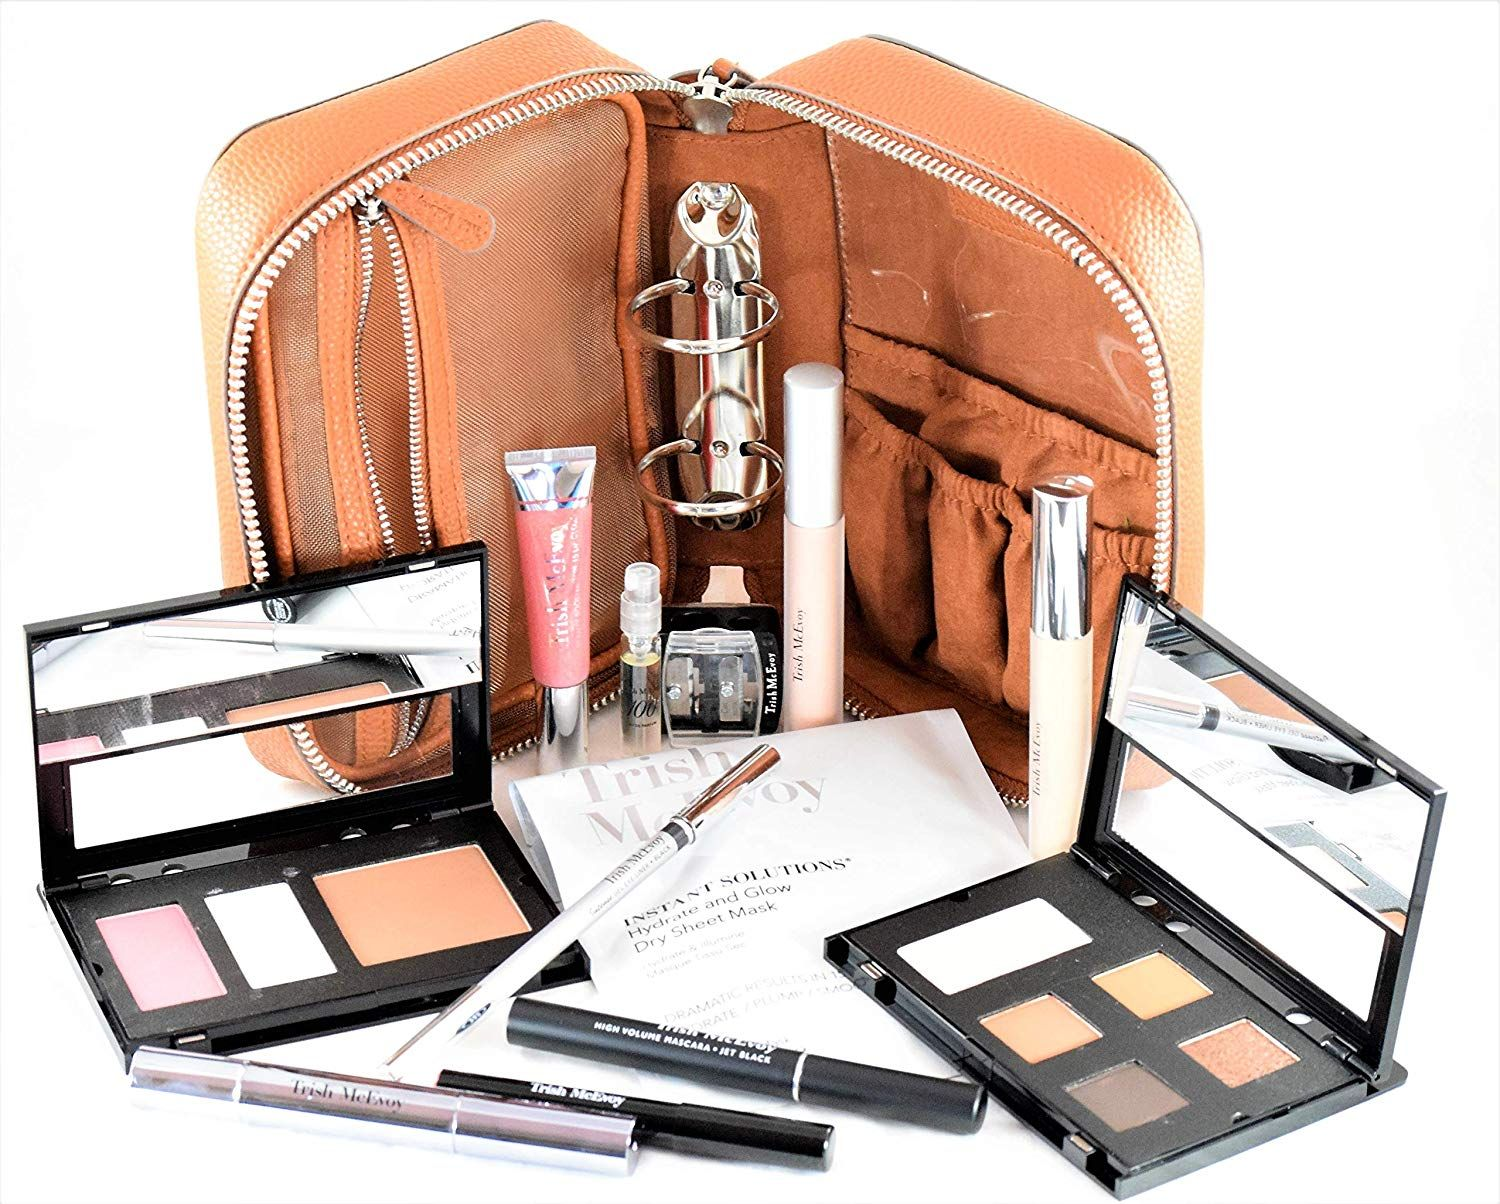 Trish McEvoy The Power of Makeup Planner Collection in